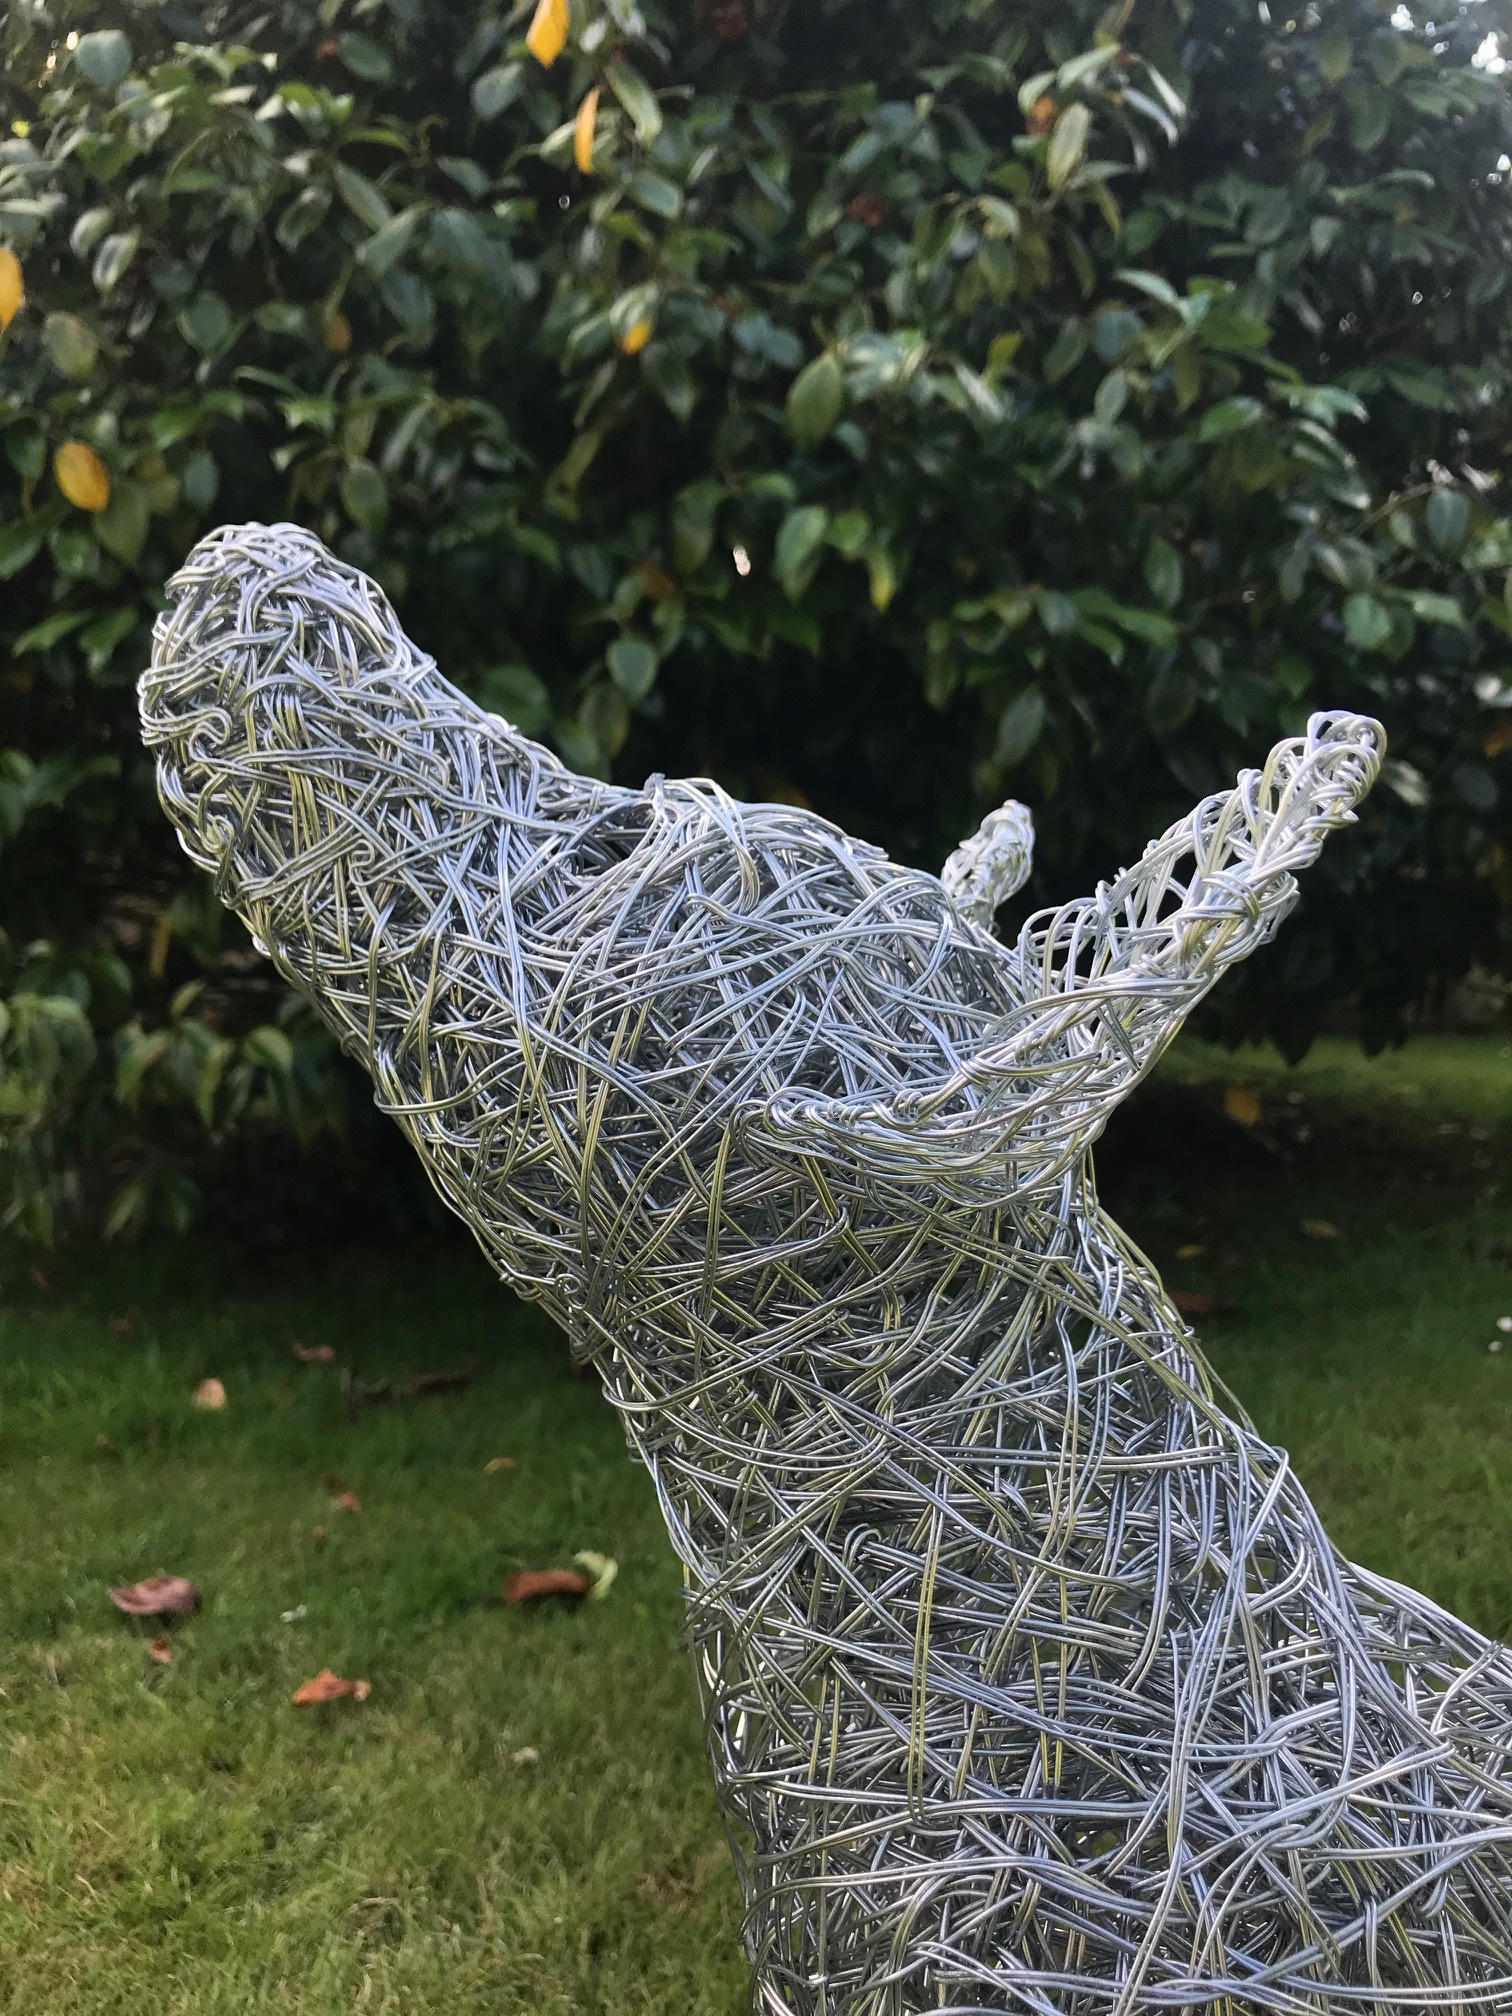 - The weekend just passed marked the end of the Waveney Valley Sculpture Trail 2019, a big thank you to everyone who visited and supported the event and an extra thanks to those who voted for my pieces, awarding them 3rd in People's Choice!